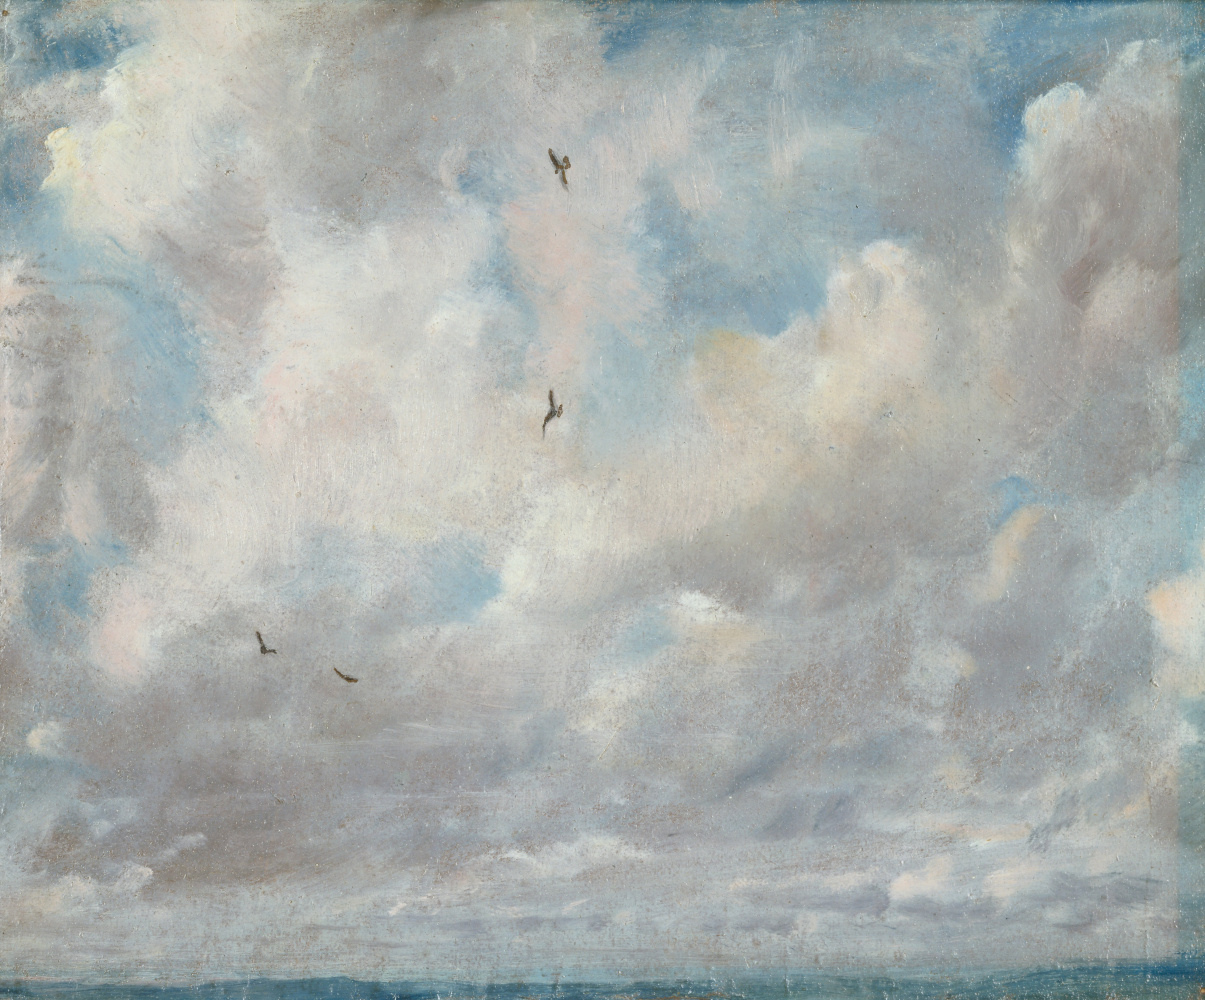 John Constable. Clouds and birds. Etude